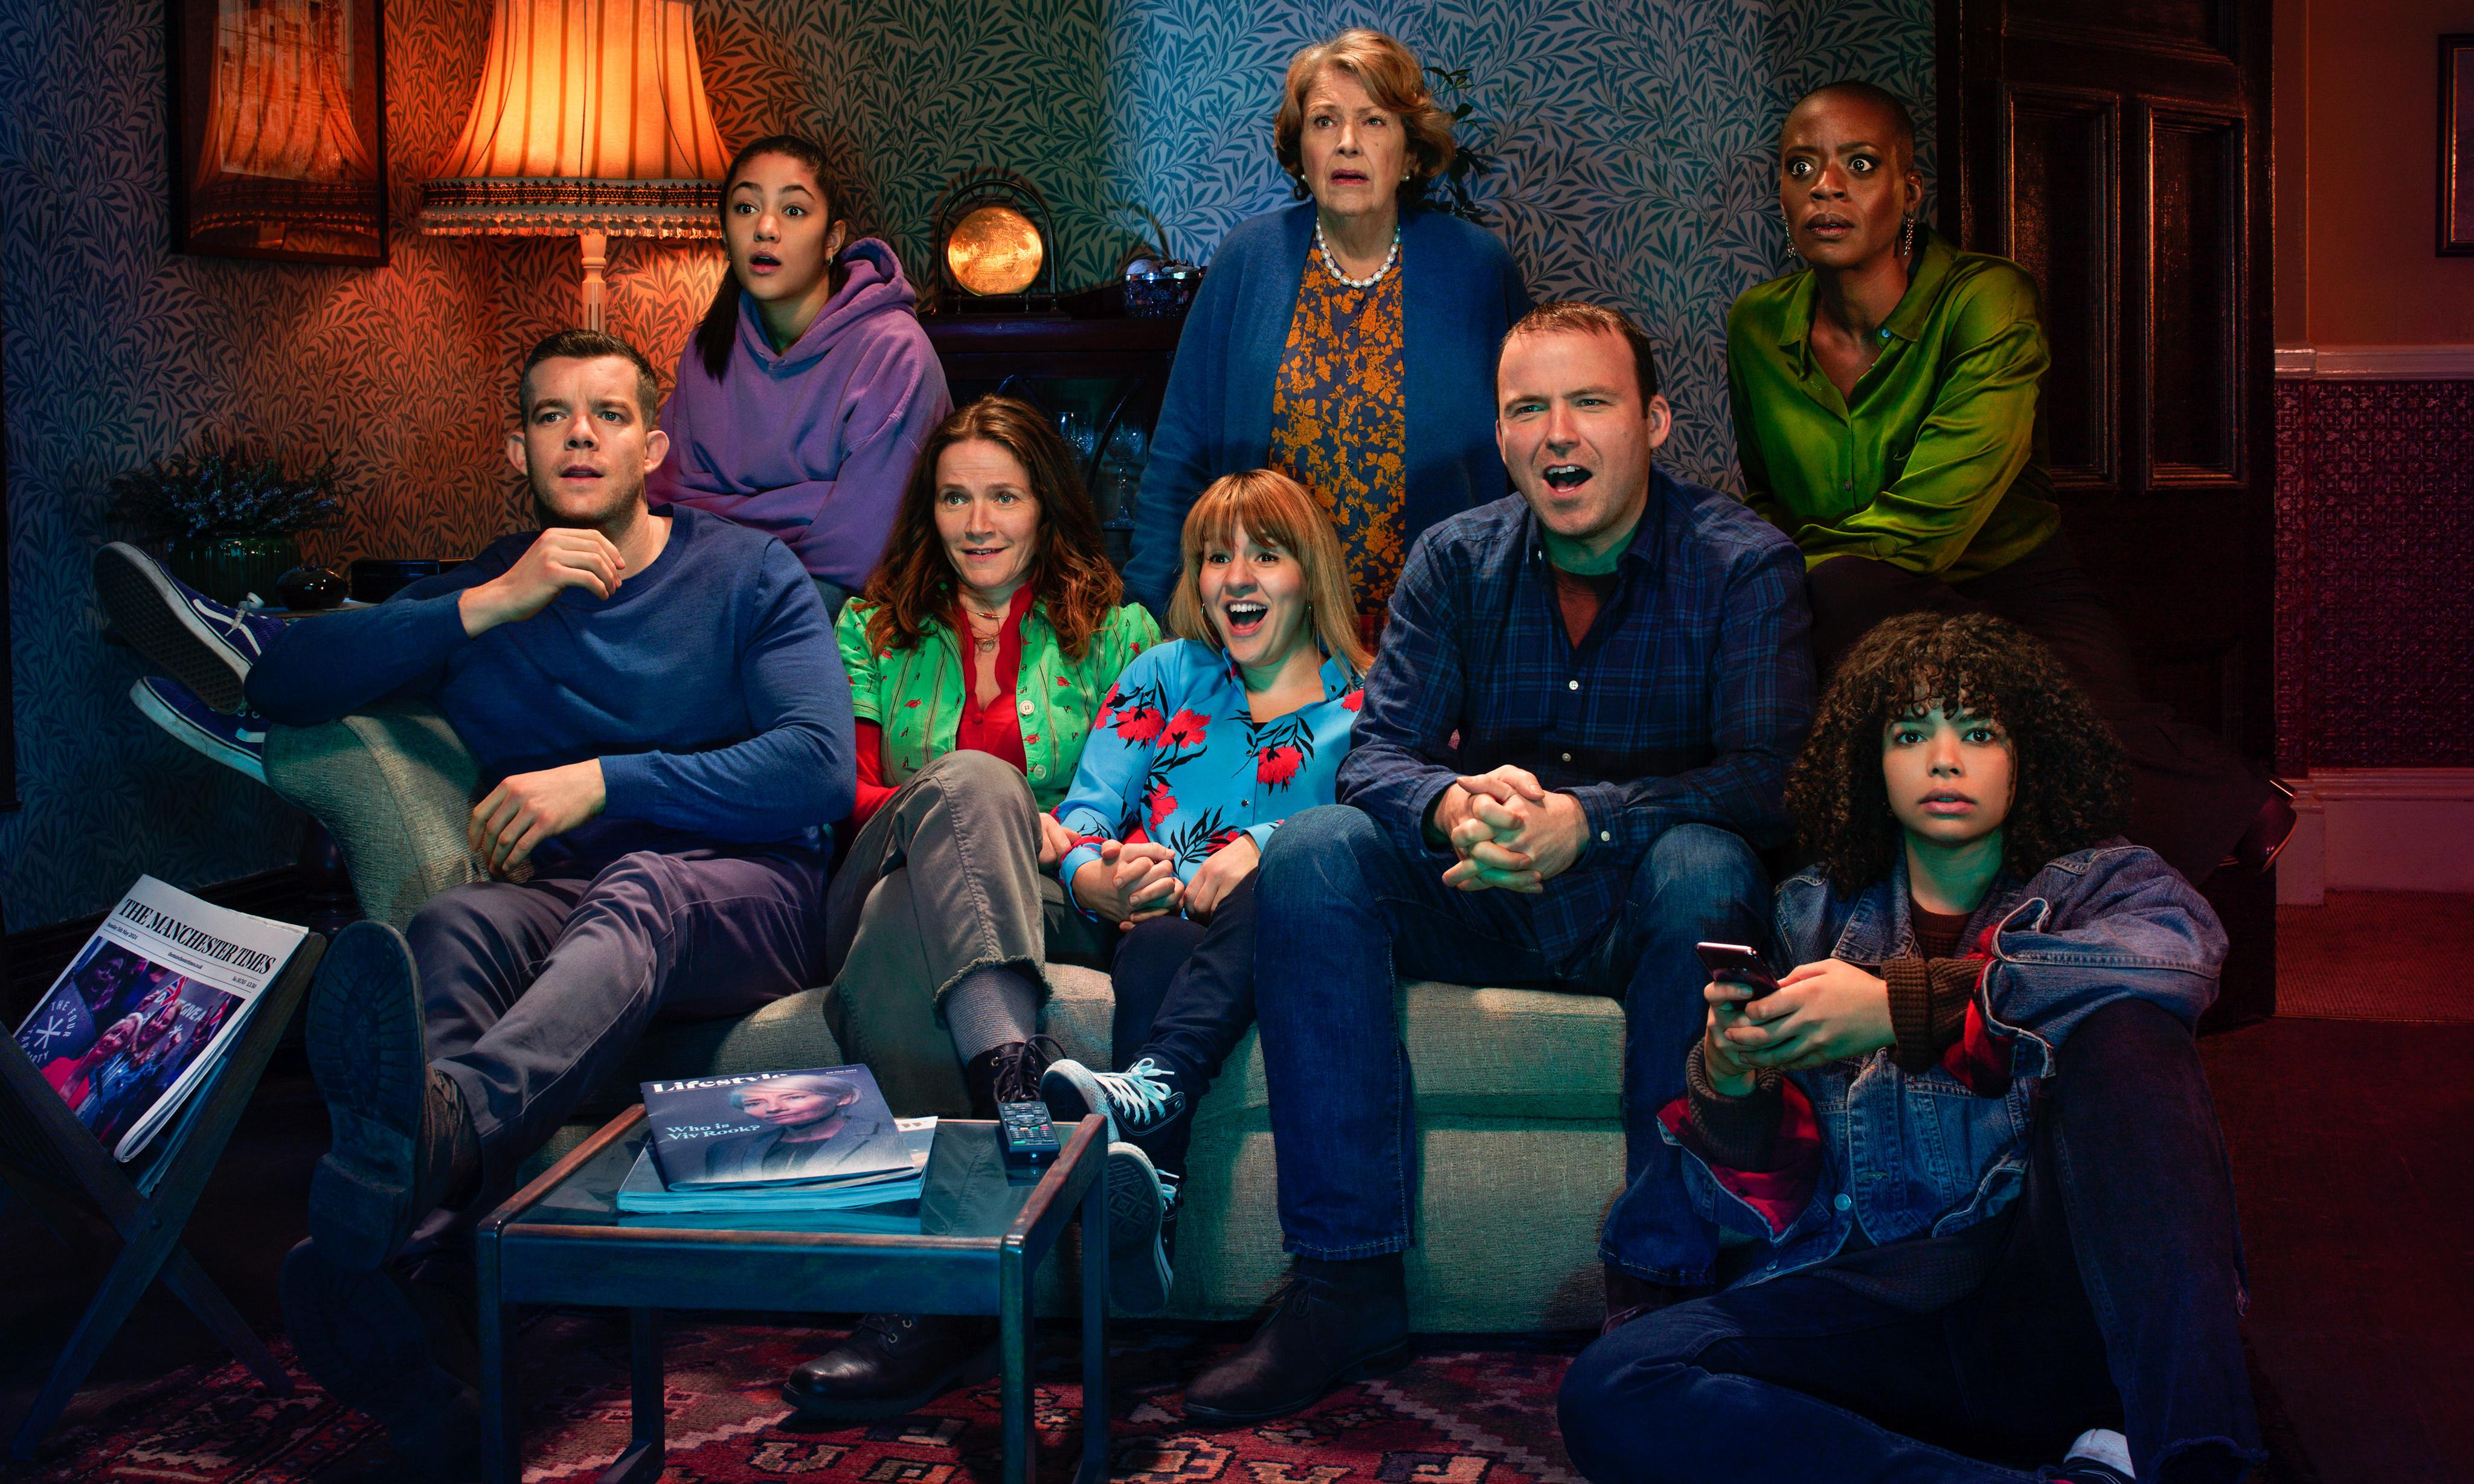 The 50 best TV shows of 2019: No 4 – Years and Years